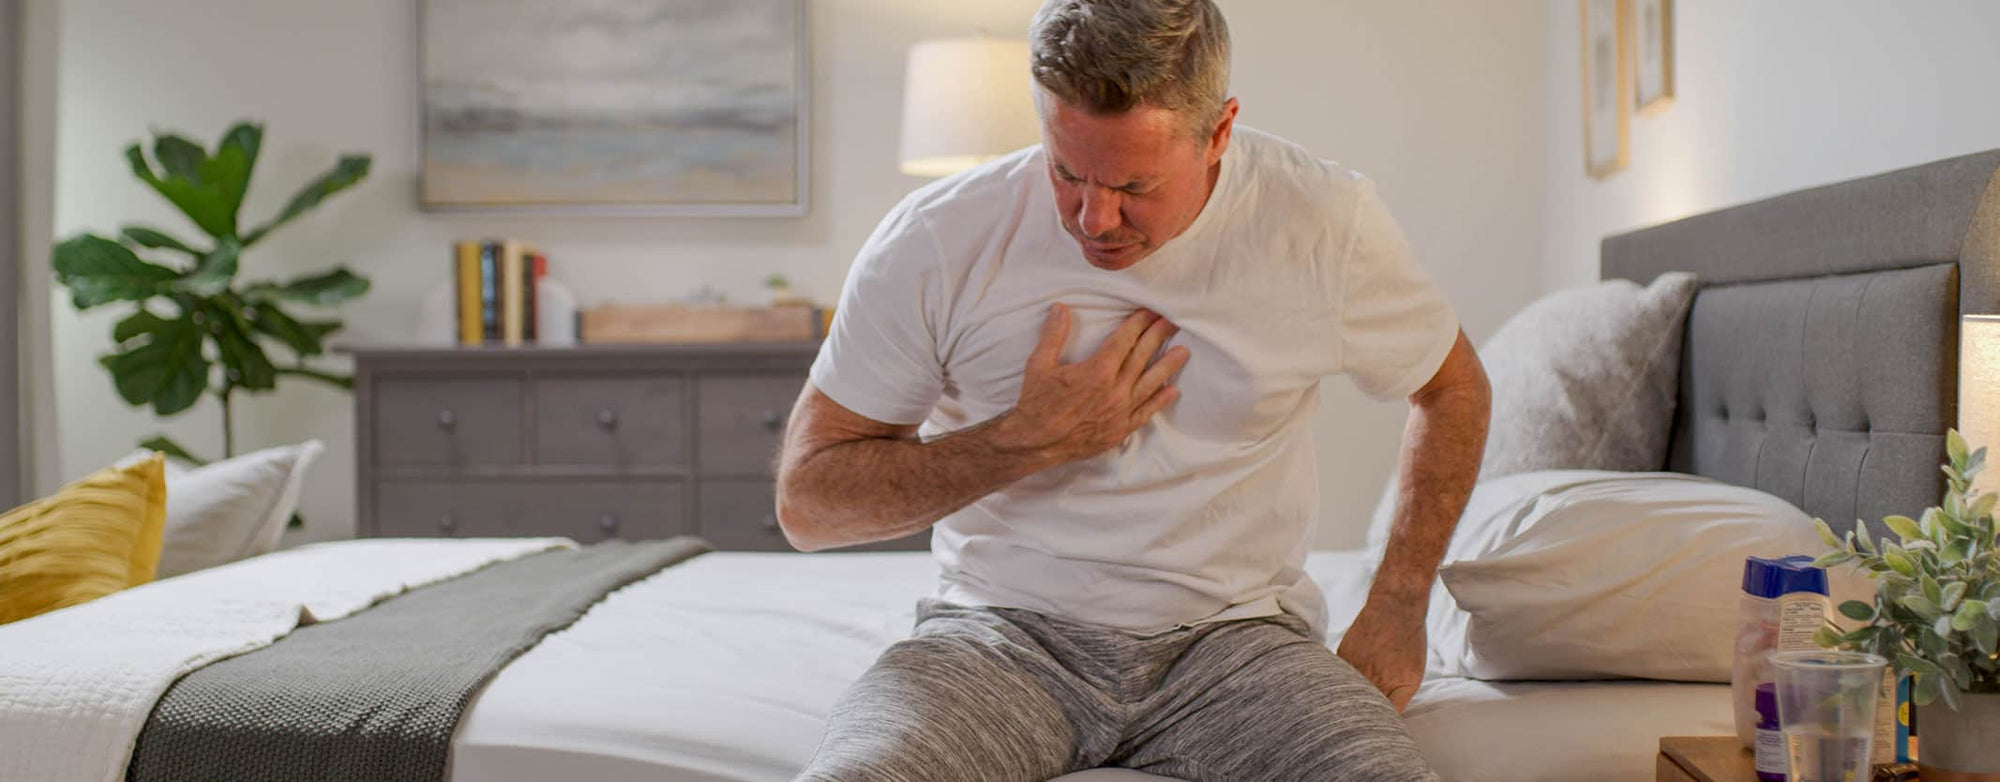 man on bed unable to sleep from reflux